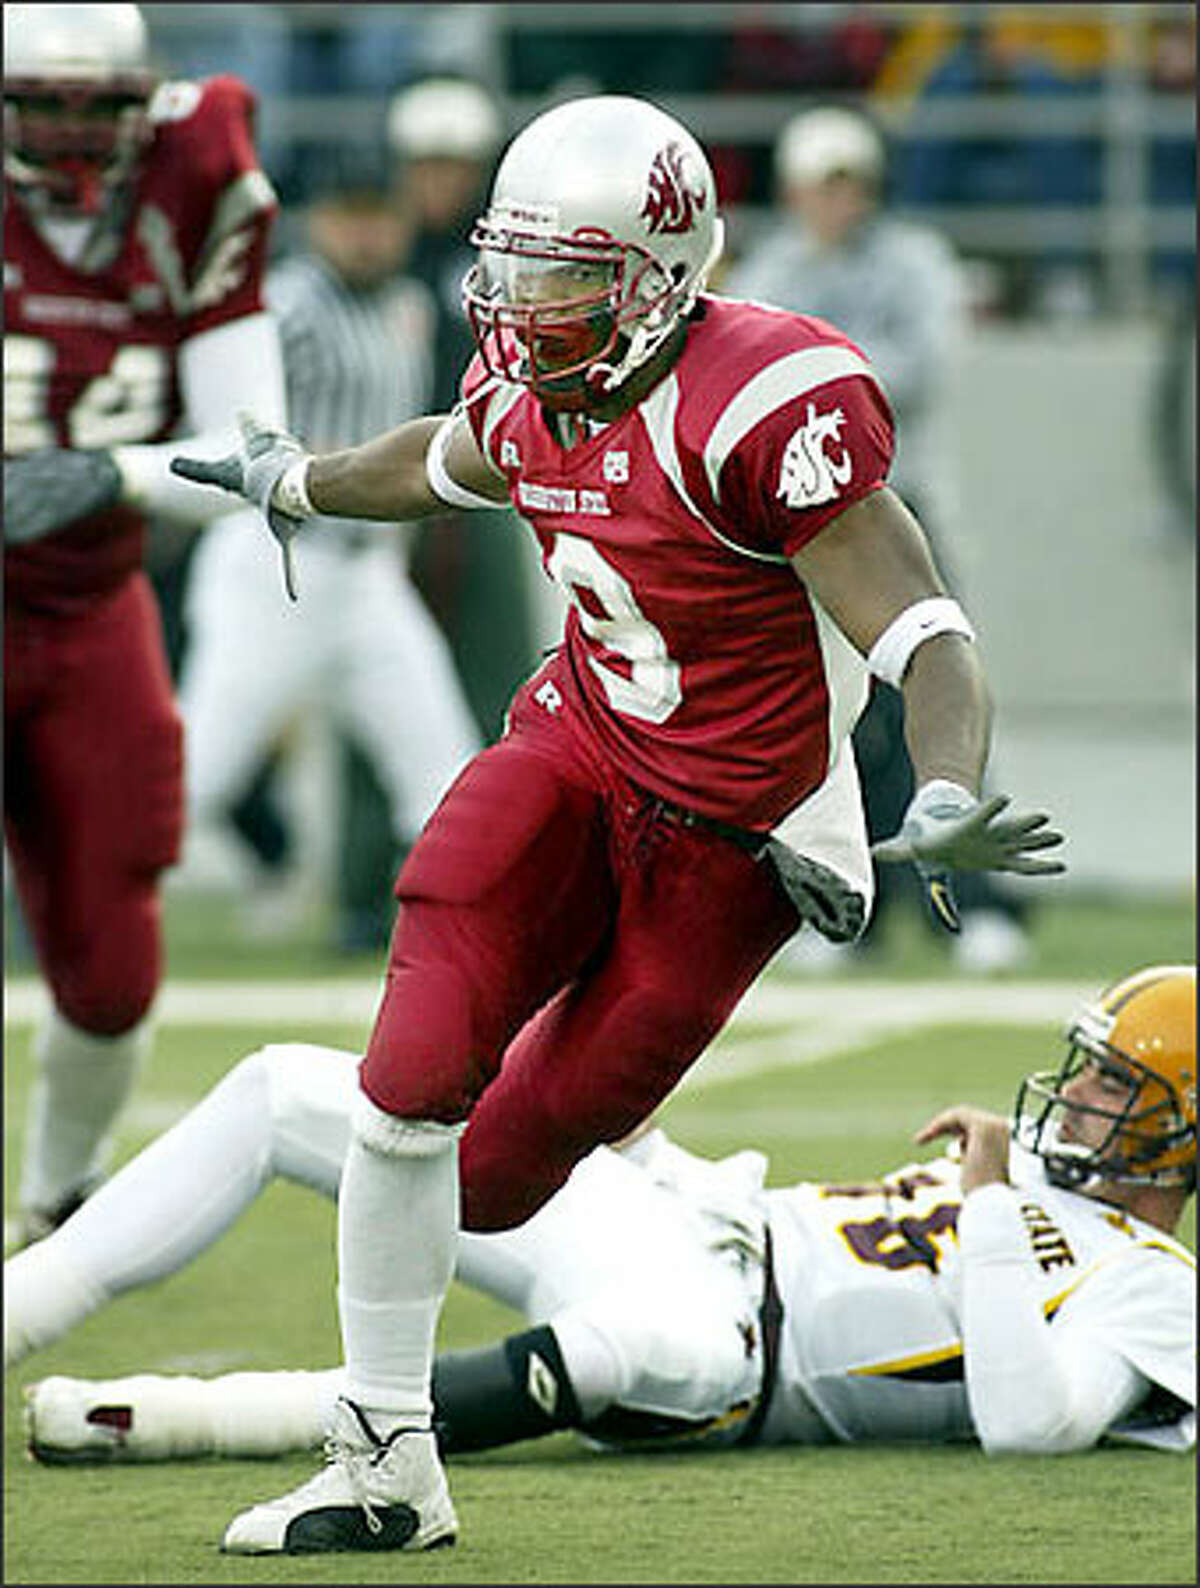 Washington State defensive end Isaac Brown celebrates after he sacked Arizona State quarterback Andrew Walter, who lies on the field behind Brown in the first quarter Saturday, Nov. 15, 2003, at Martin Stadium in Pullman. (AP Photo/Ted S. Warren)